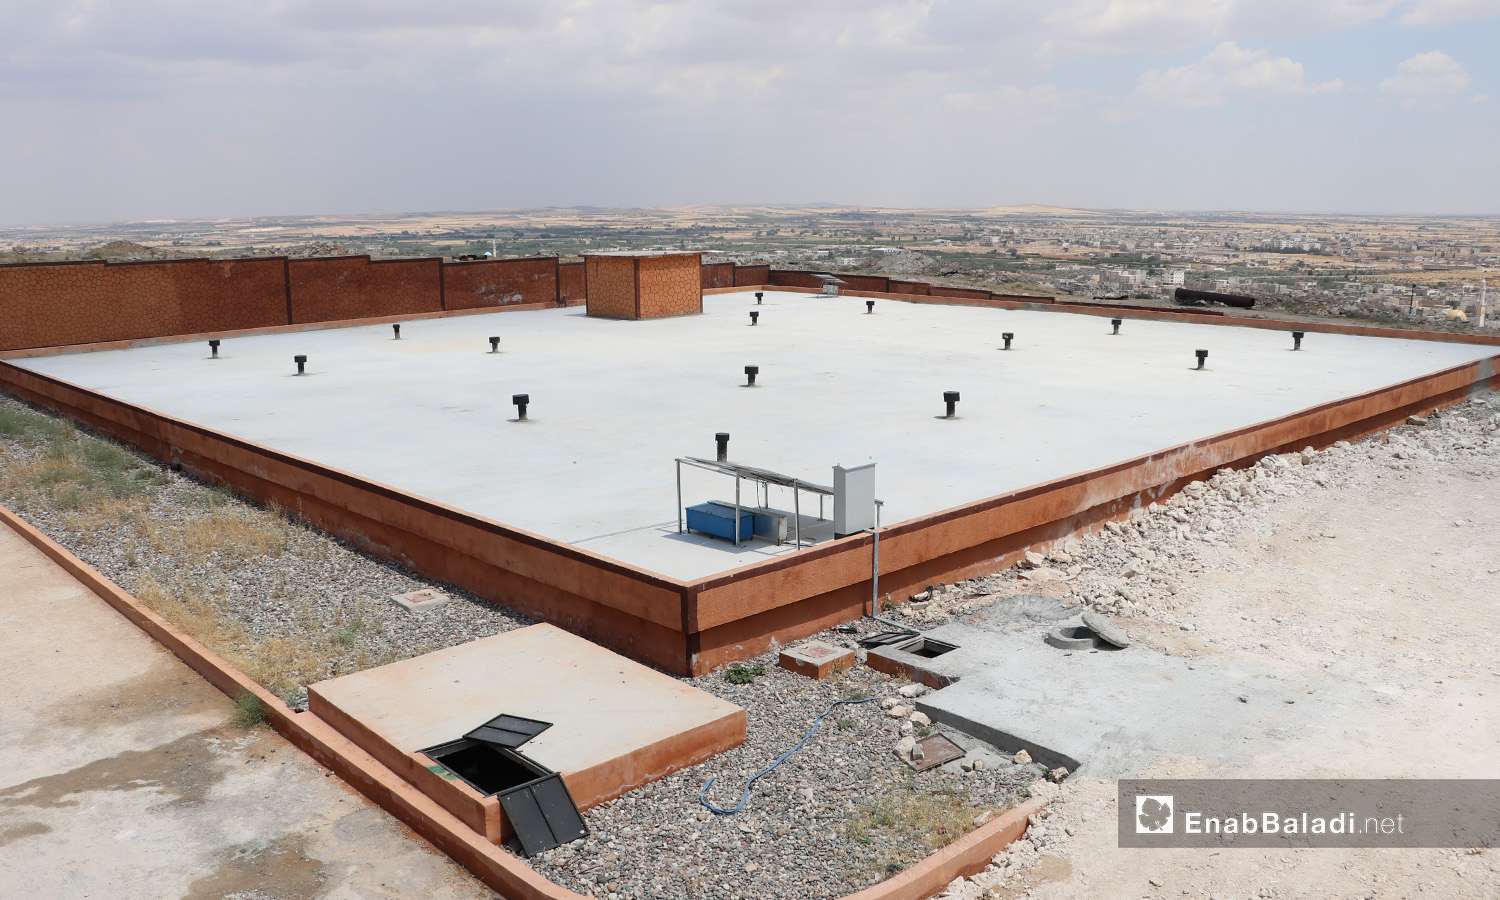 The main water tank of al-Bab city in northern Aleppo countryside – 20 June 2020 (Enab Baladi / Asim Melhem)